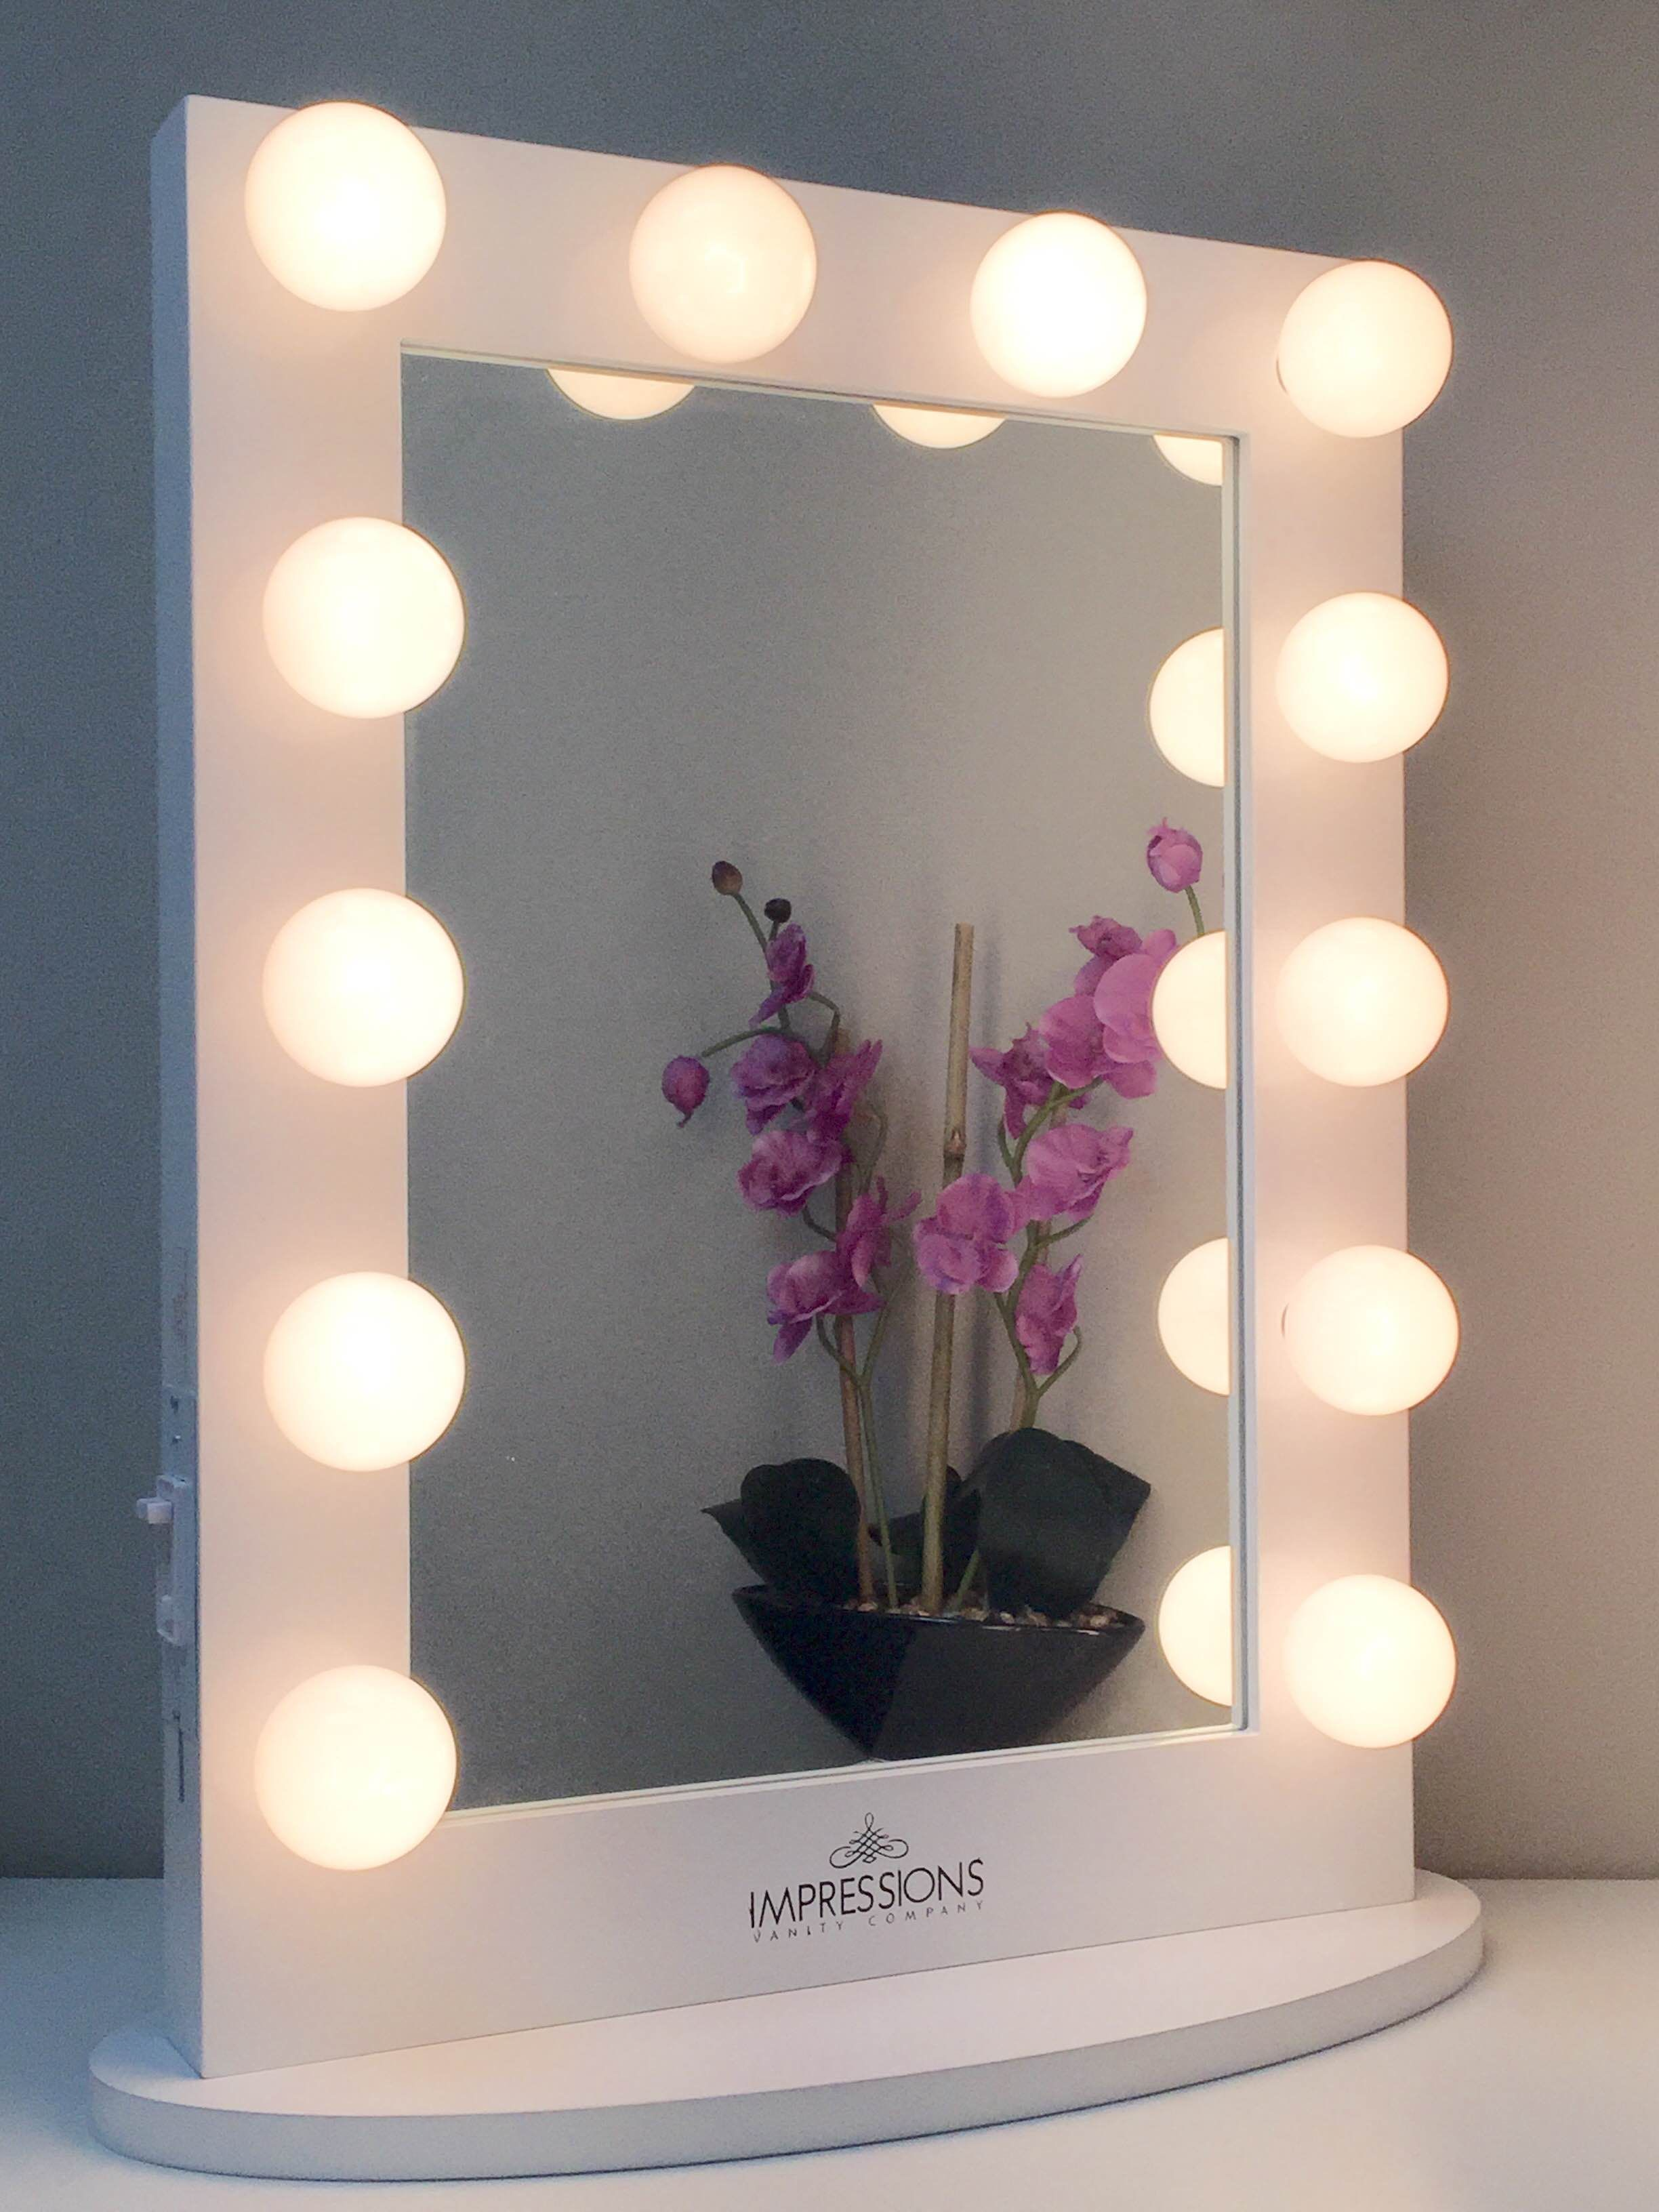 Vanity Table With Lighted Mirror Diy : Best 25+ Hollywood vanity mirror ideas on Pinterest Hollywood mirror diy, Hollywood mirror and ...